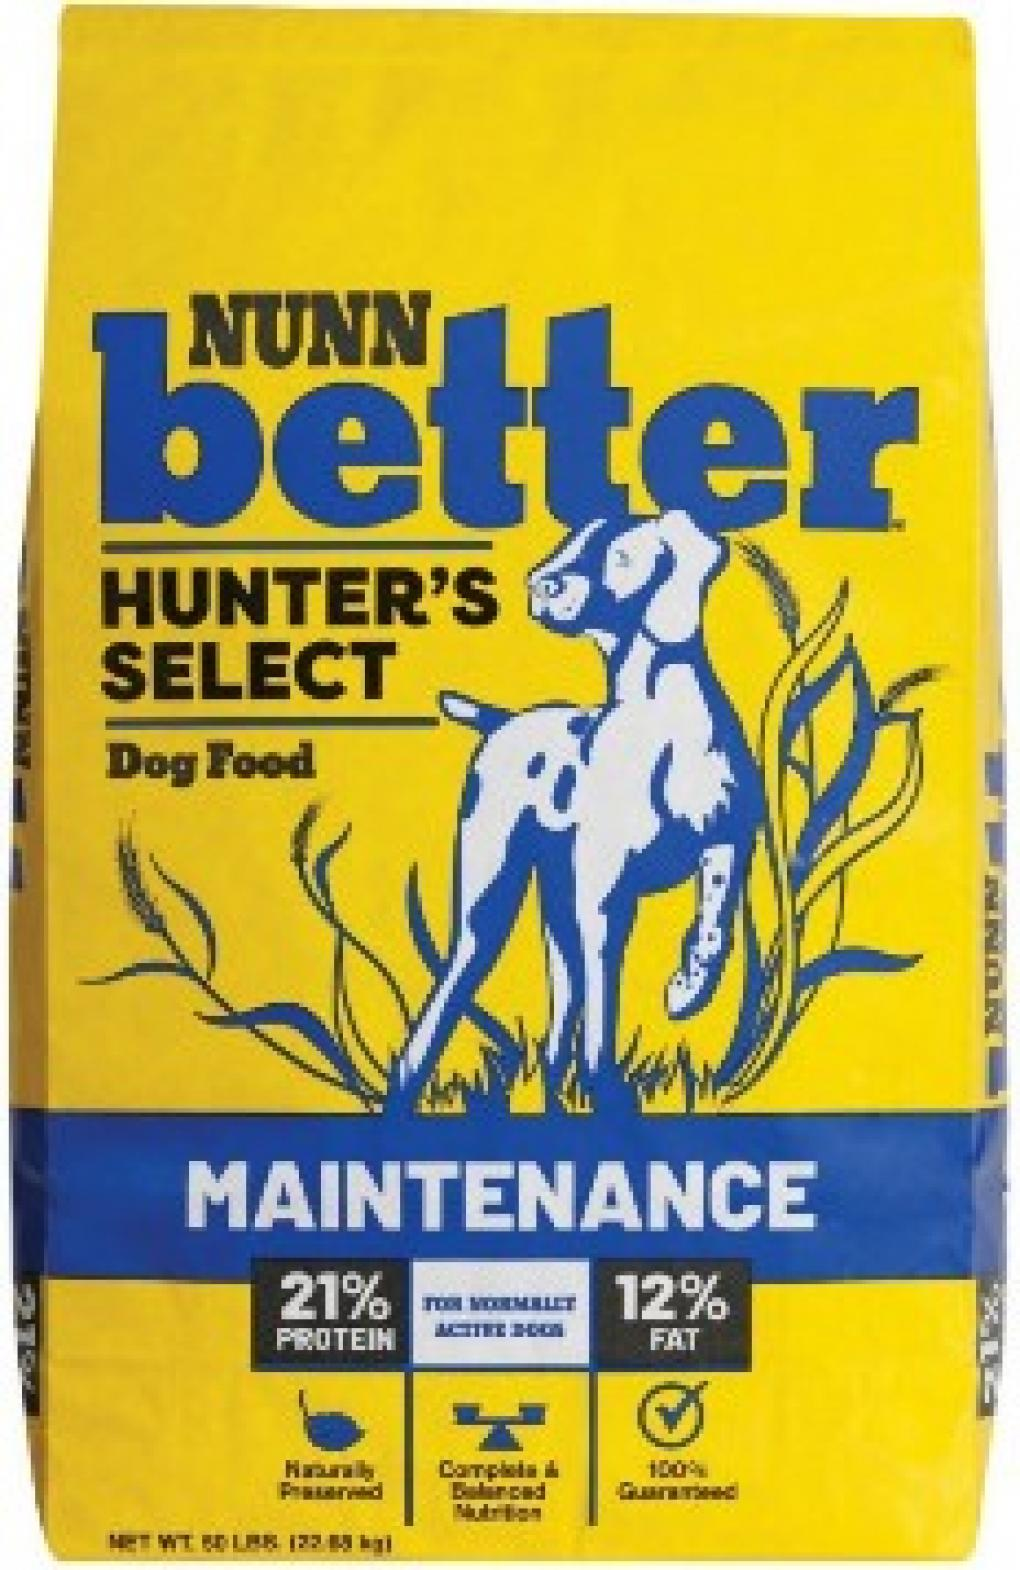 Sportmix Nunn Better Hunter's Select Dog Food label